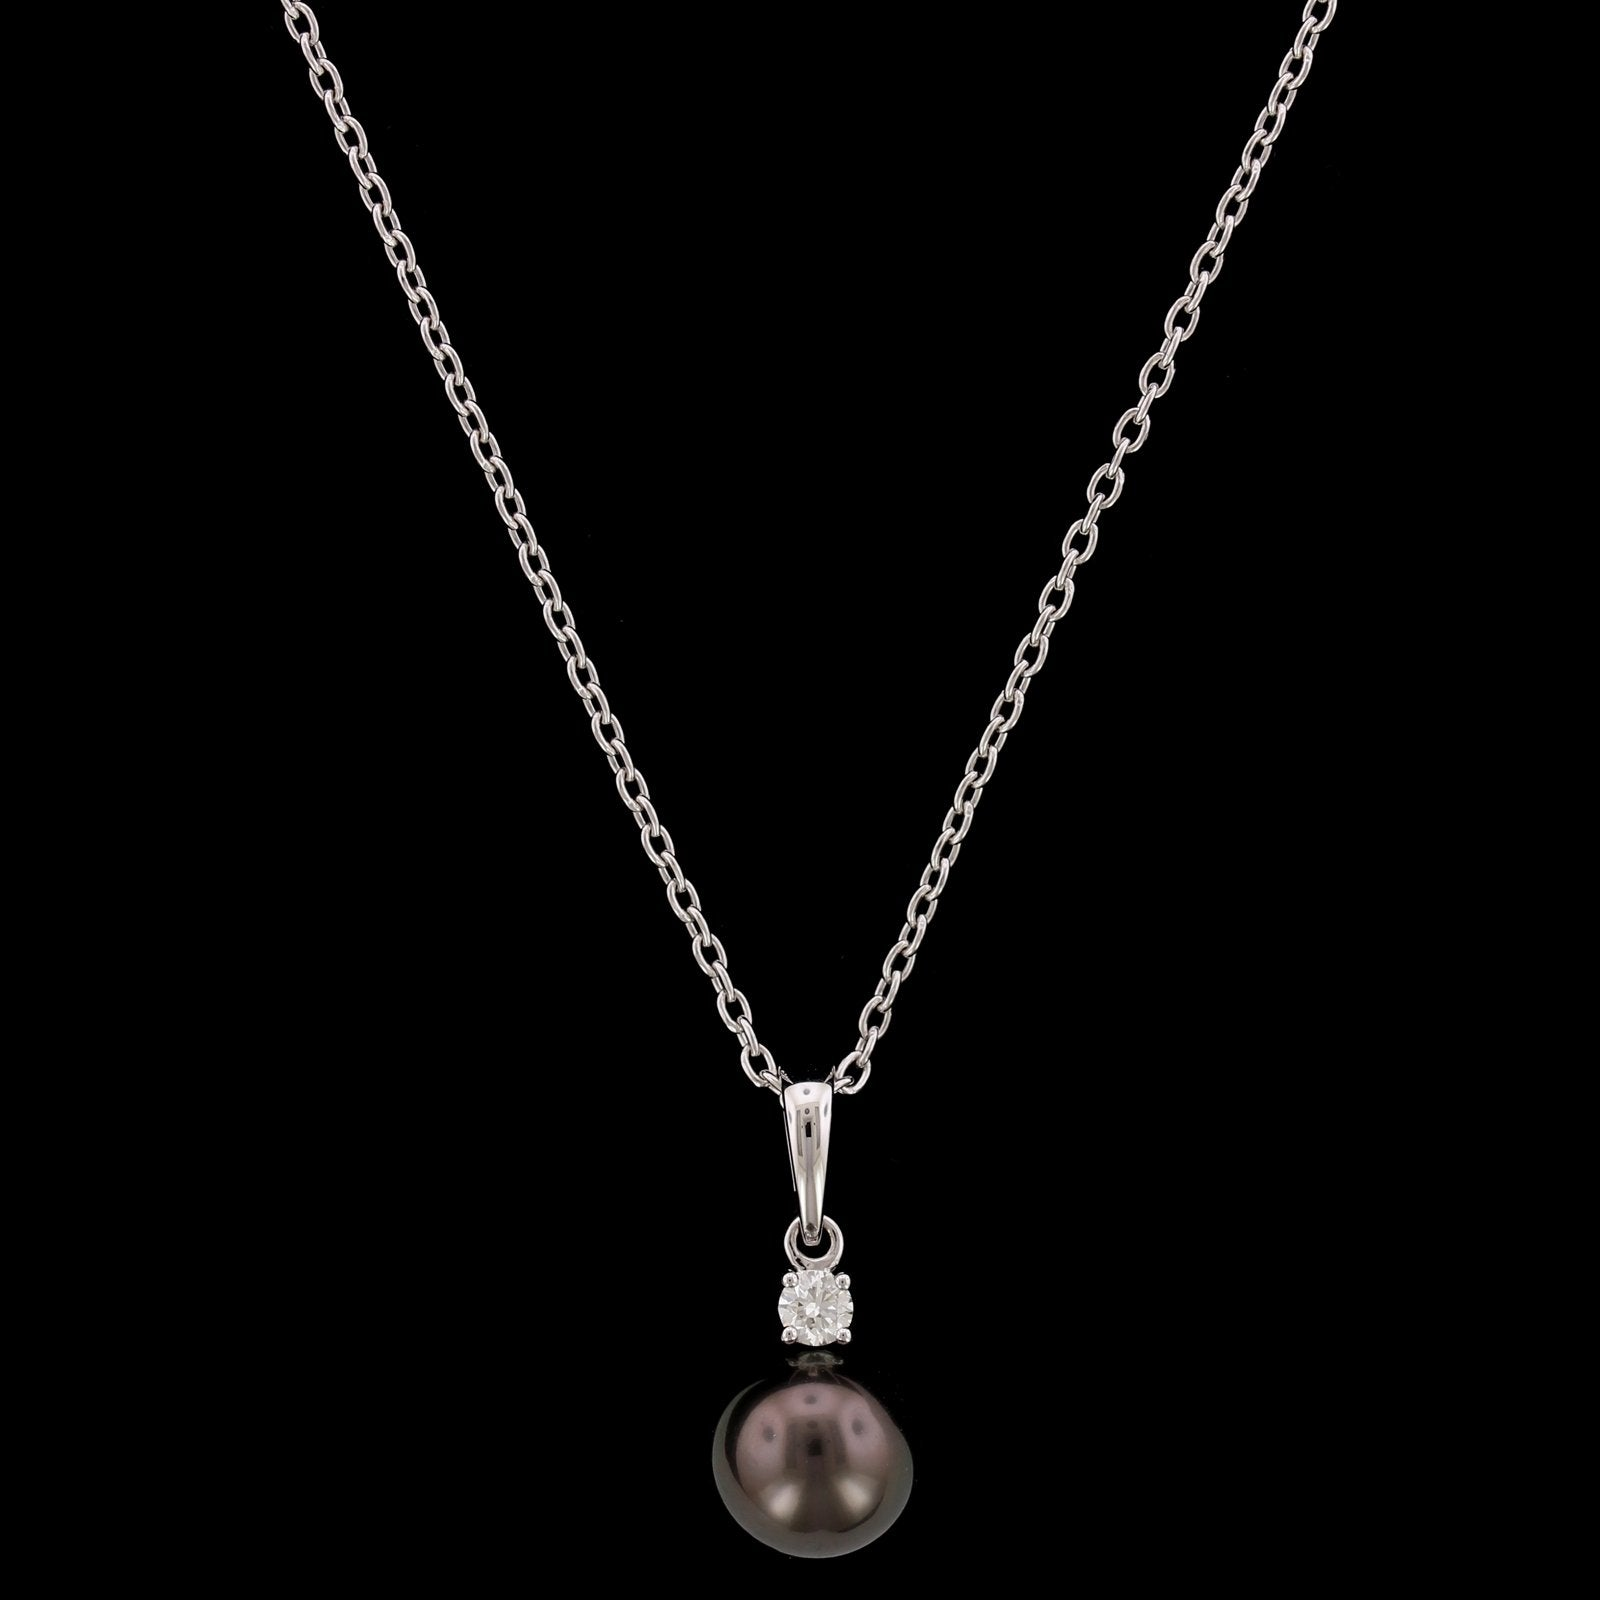 Mikimoto 18K White Gold Estate Cultured Black South Sea Pearl Pendant